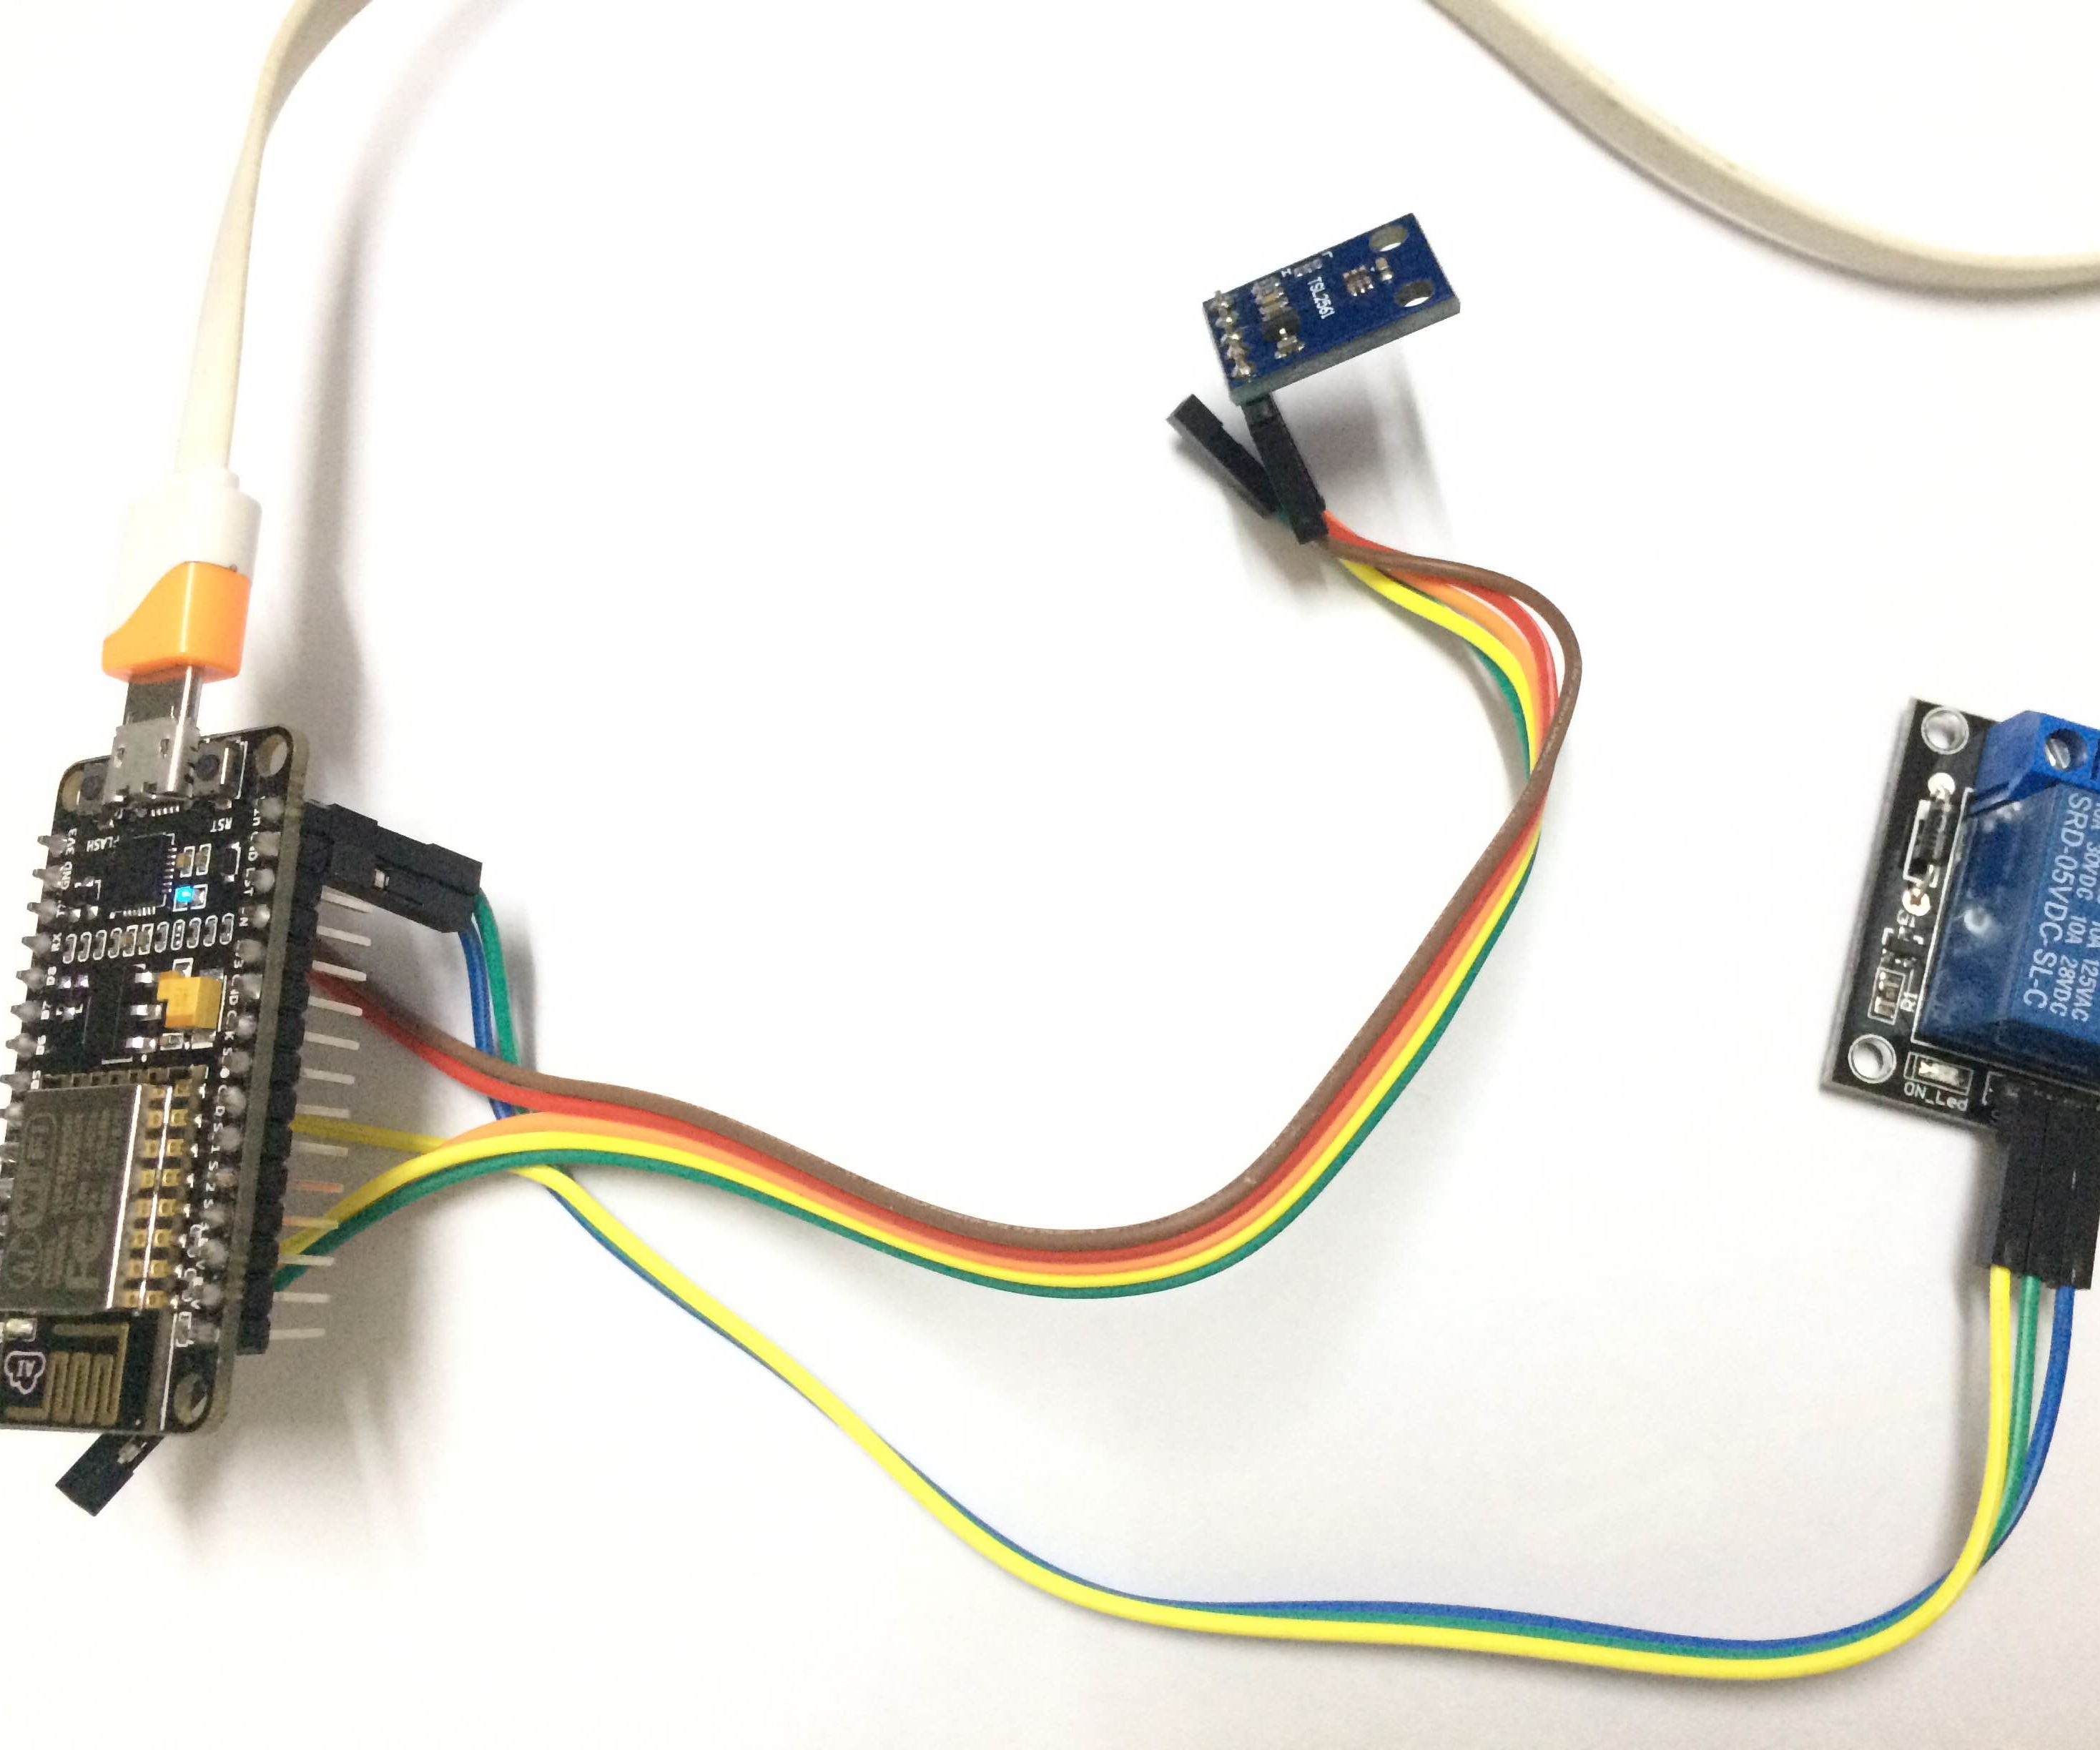 Easy IoT Ambient Light Sensor & Lux Meter using NodeMCU and Cayenne